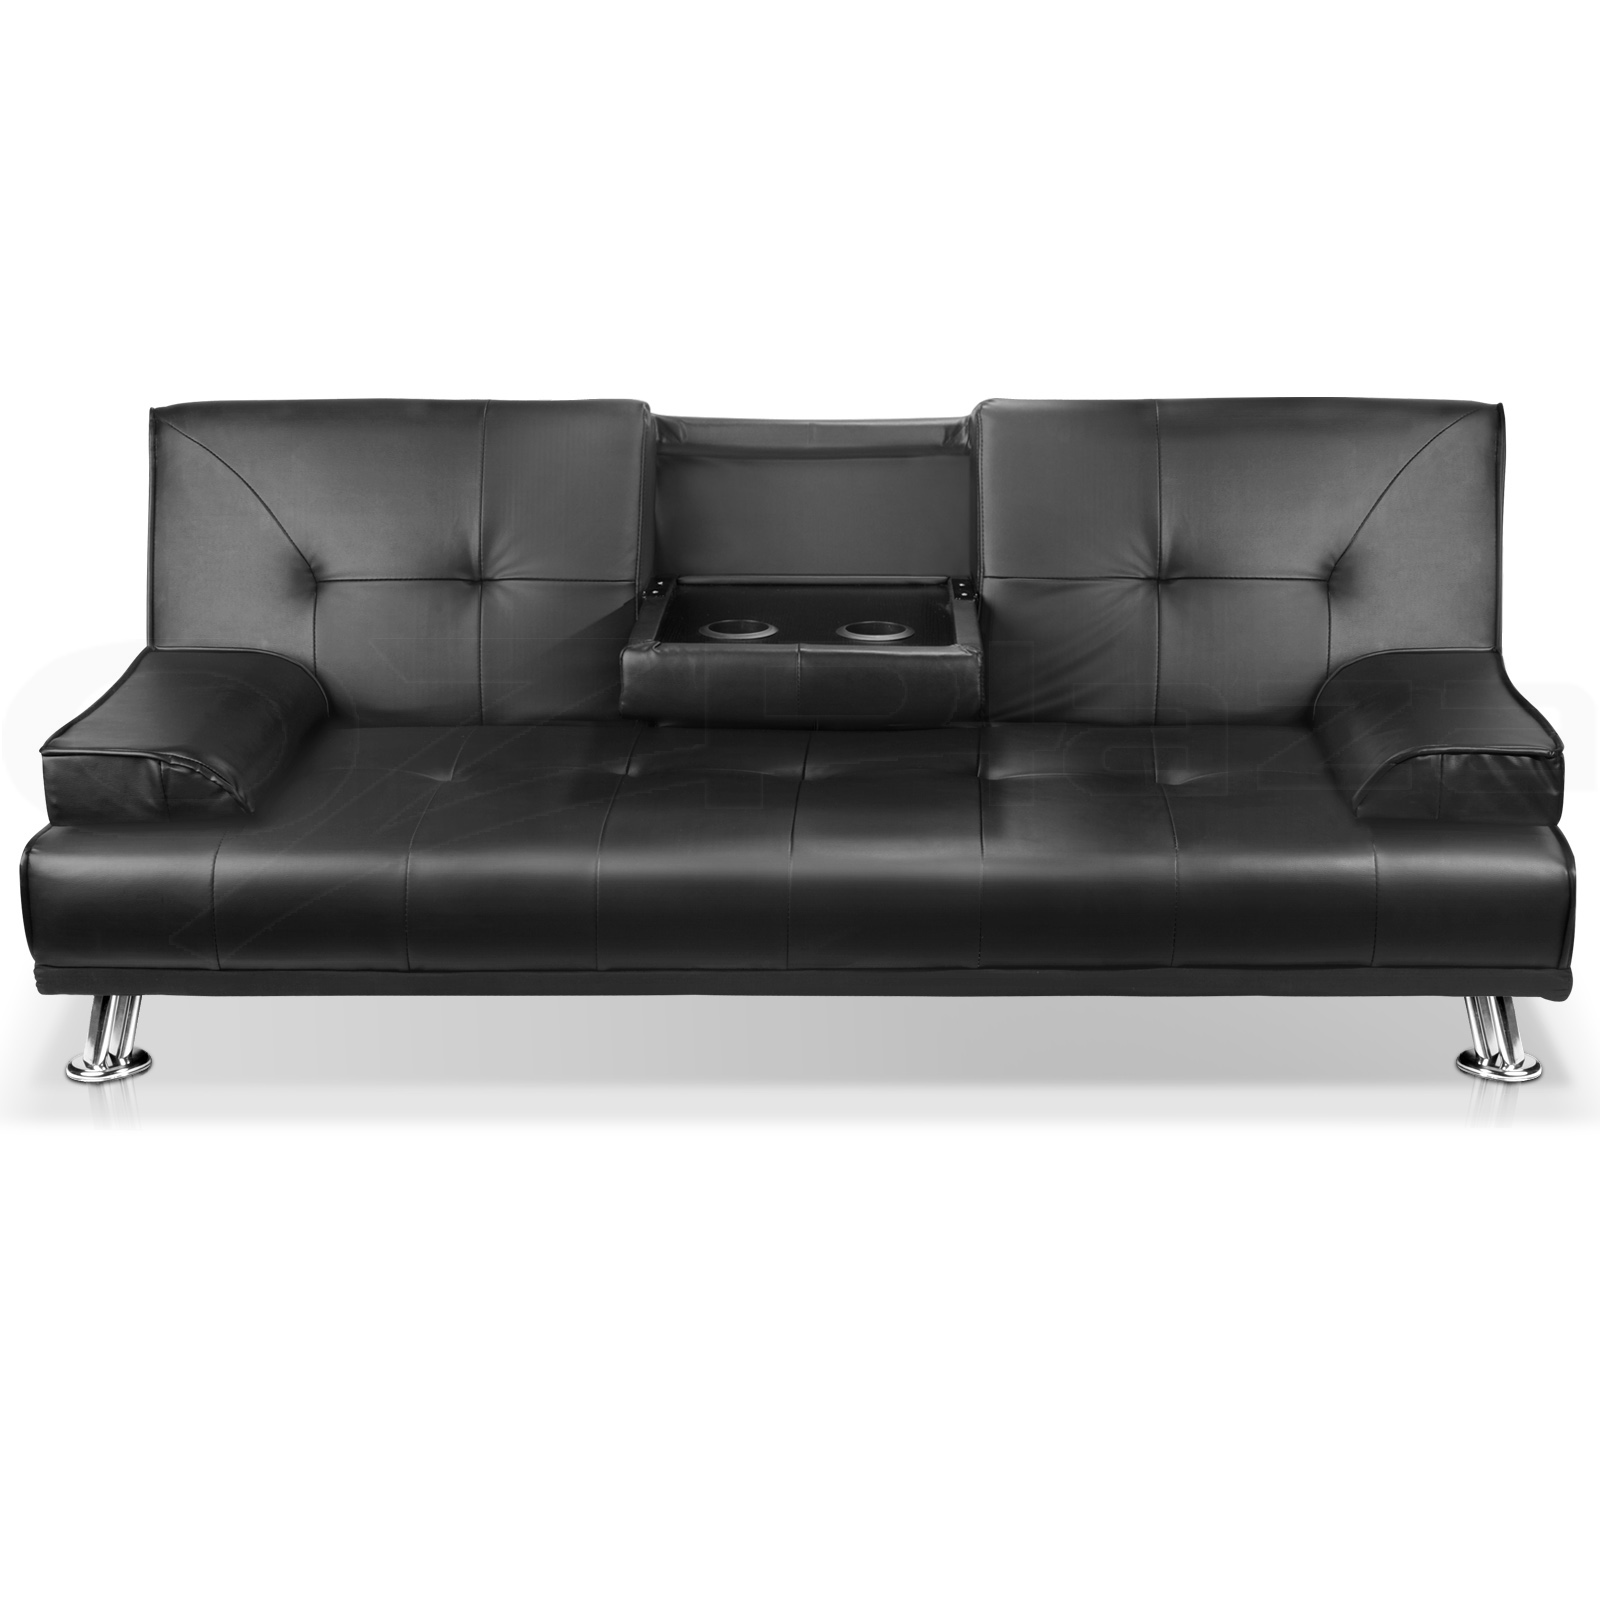 Linen FabricPU Leather Sofa Couch Outdoor Lounges Futon  : SBED R1C BK VAR P02 from www.ebay.com.au size 1600 x 1600 jpeg 219kB